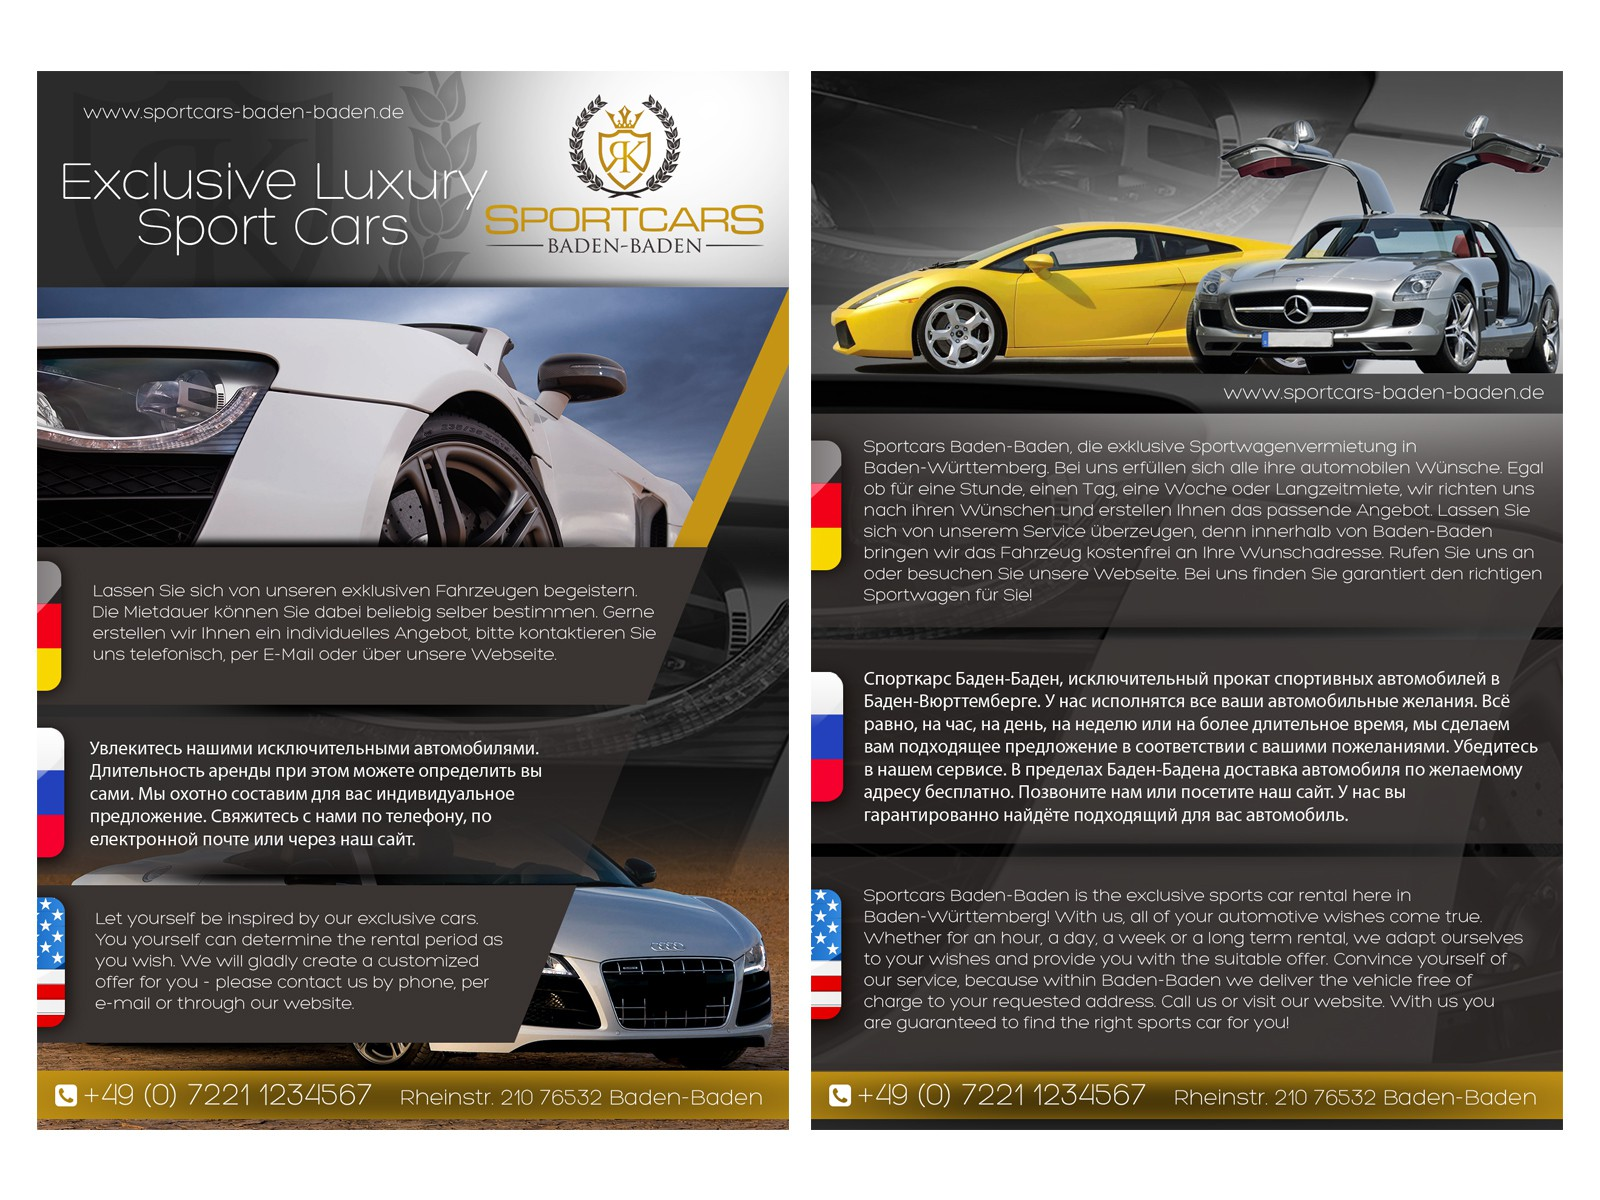 Flyer for a car rental for exclusive luxury sports cars